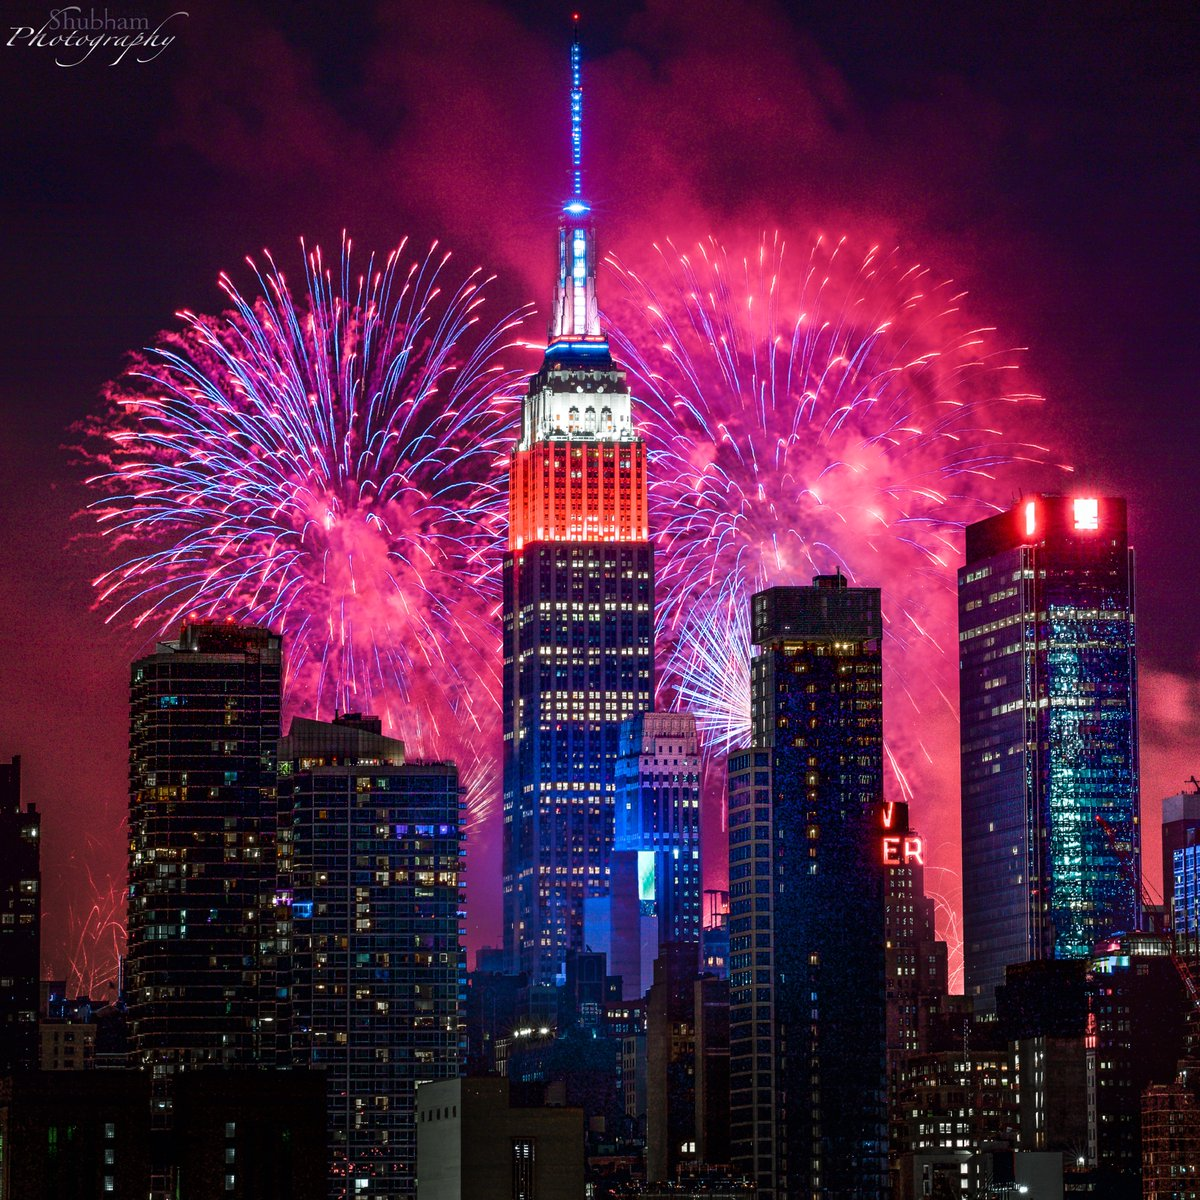 Fired off our dynamic red, white & blue lights tonight in celebration of Independence Day & the @Macys 44th Annual 4th of July Spectacular finale, launched from the top of our tower! #HappyJuly4th #ESBright   📷: Shubham Dhadda https://t.co/IwcksADOBd